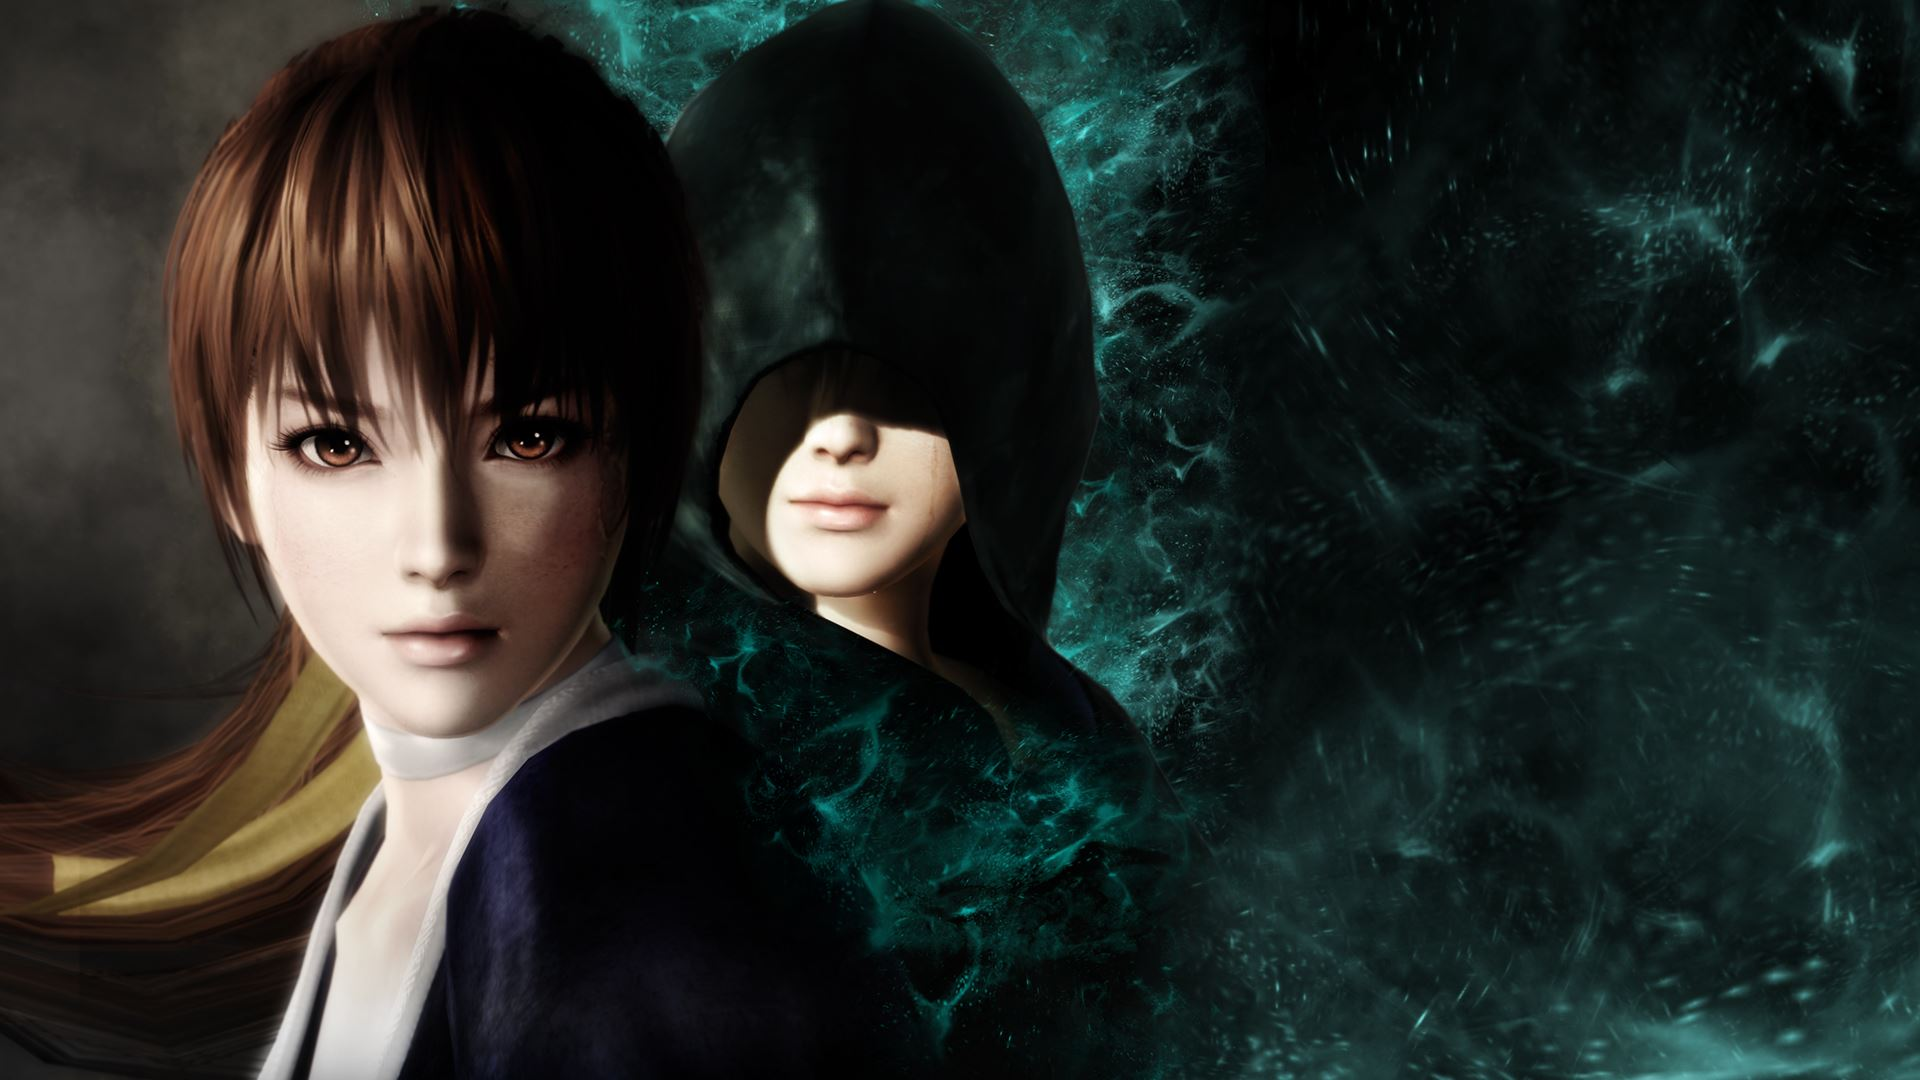 Dead or alive 5 wallpaper 78 Wallpapers 3D Wallpapers 1920x1080